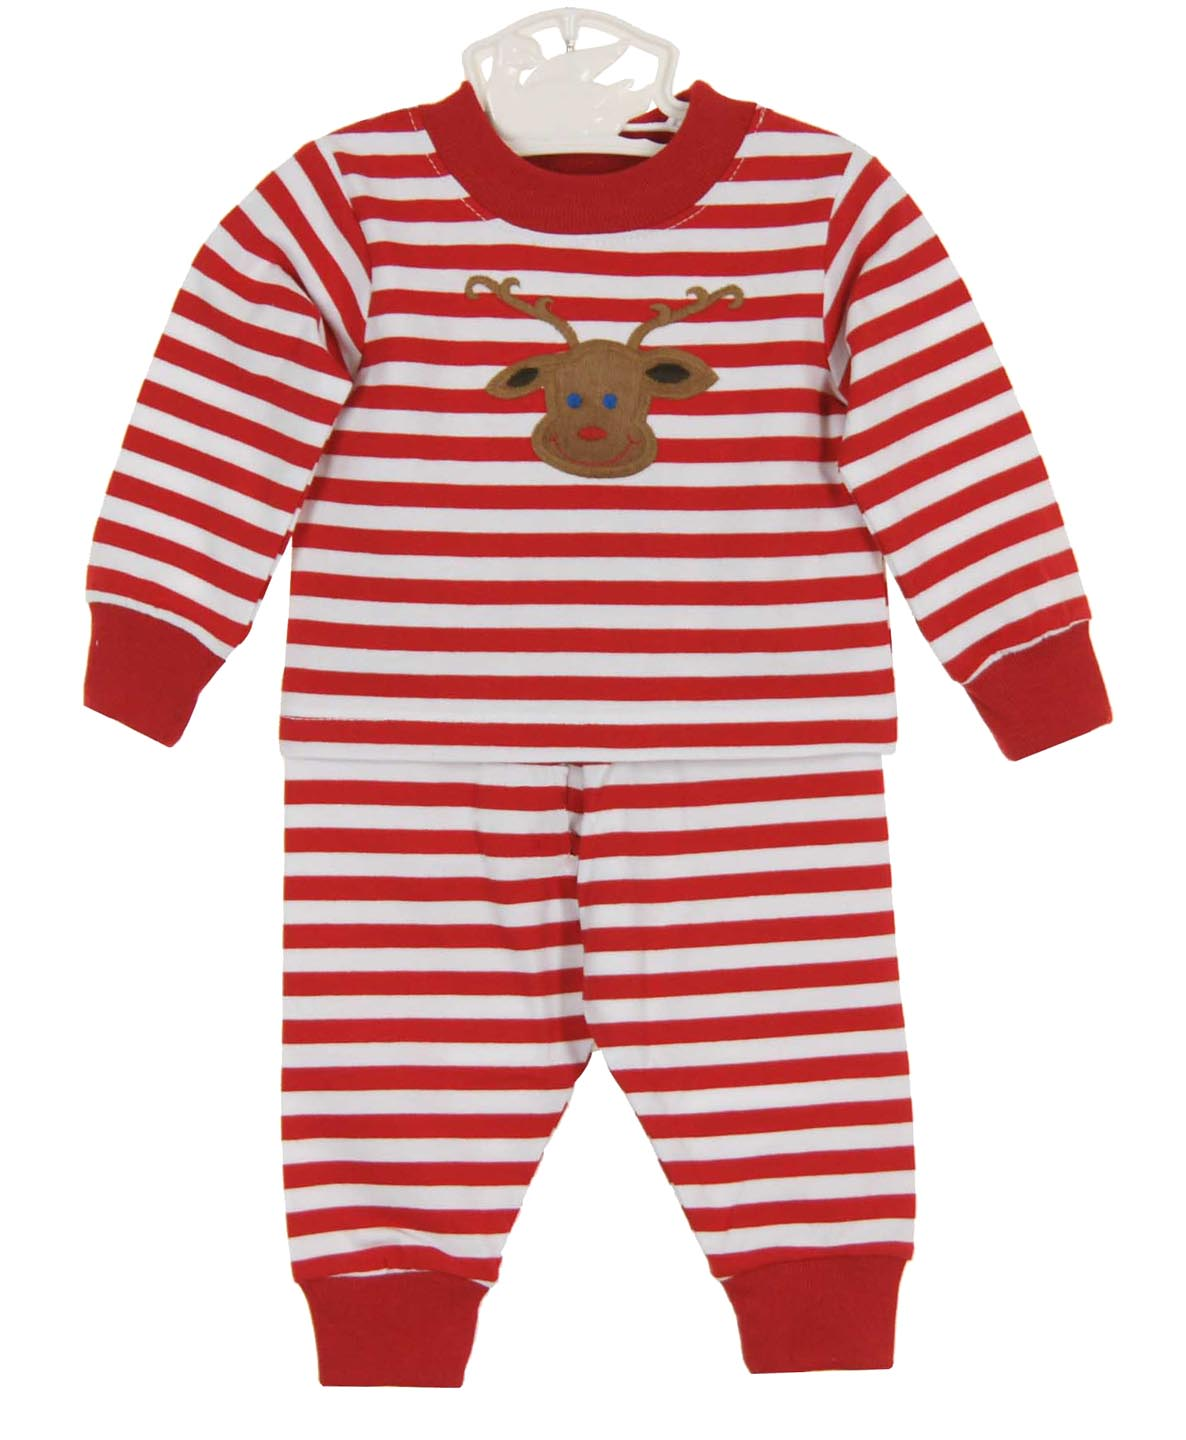 click to enlarge - Christmas Pjs Toddler